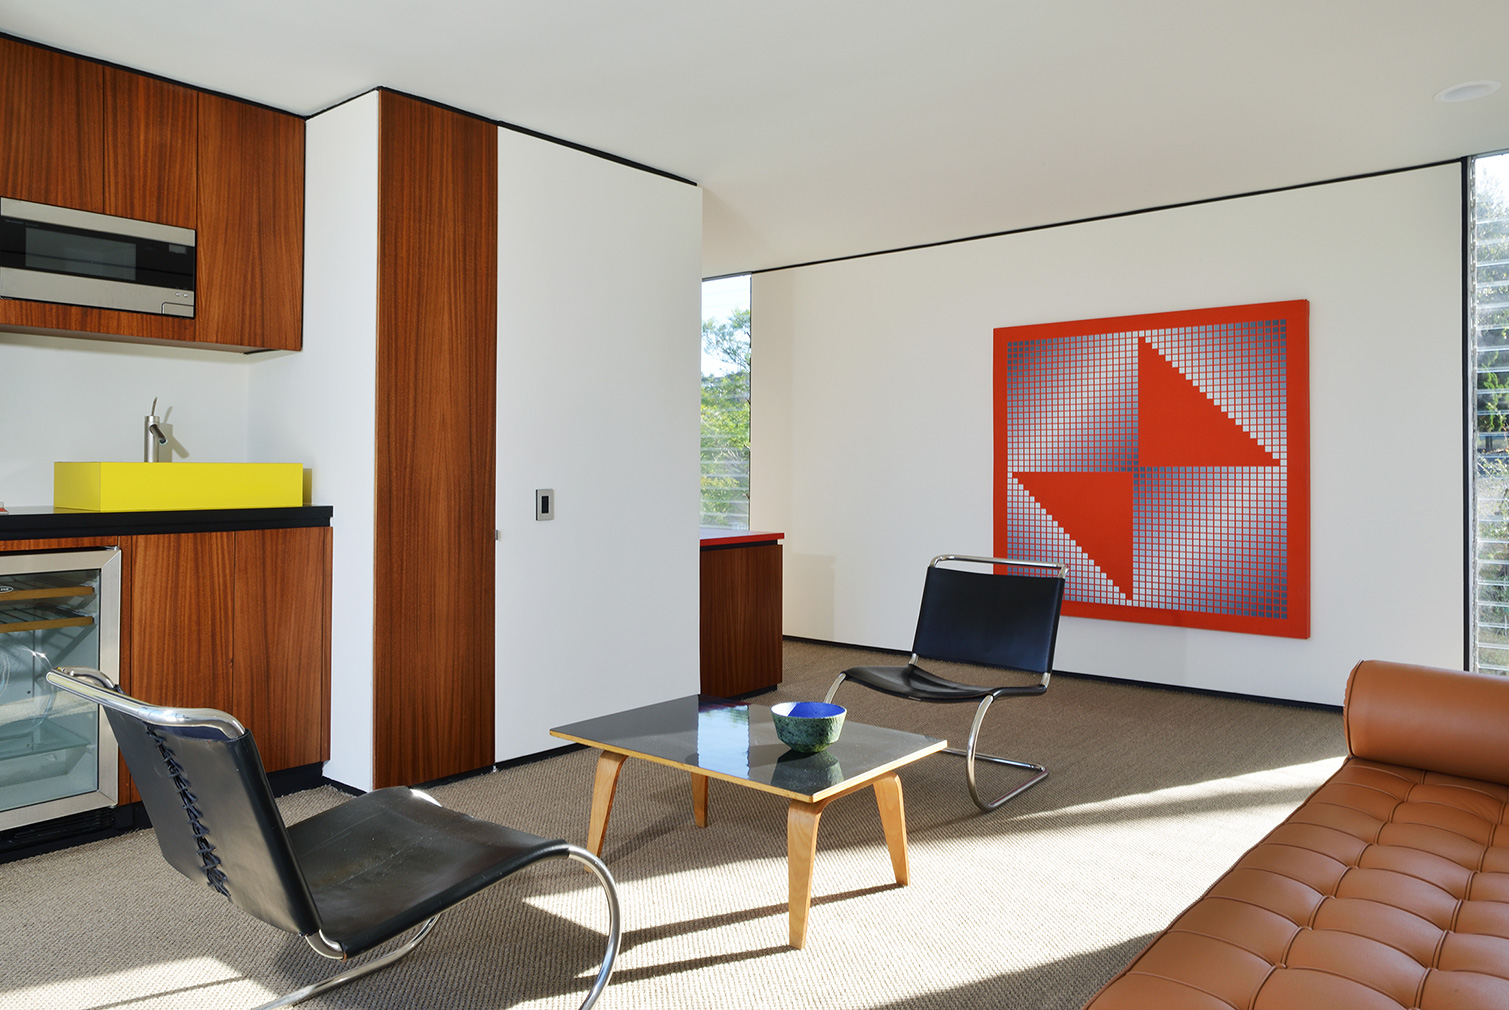 A revamped 1950s Craig Ellwood house hits the market for $2.95 million